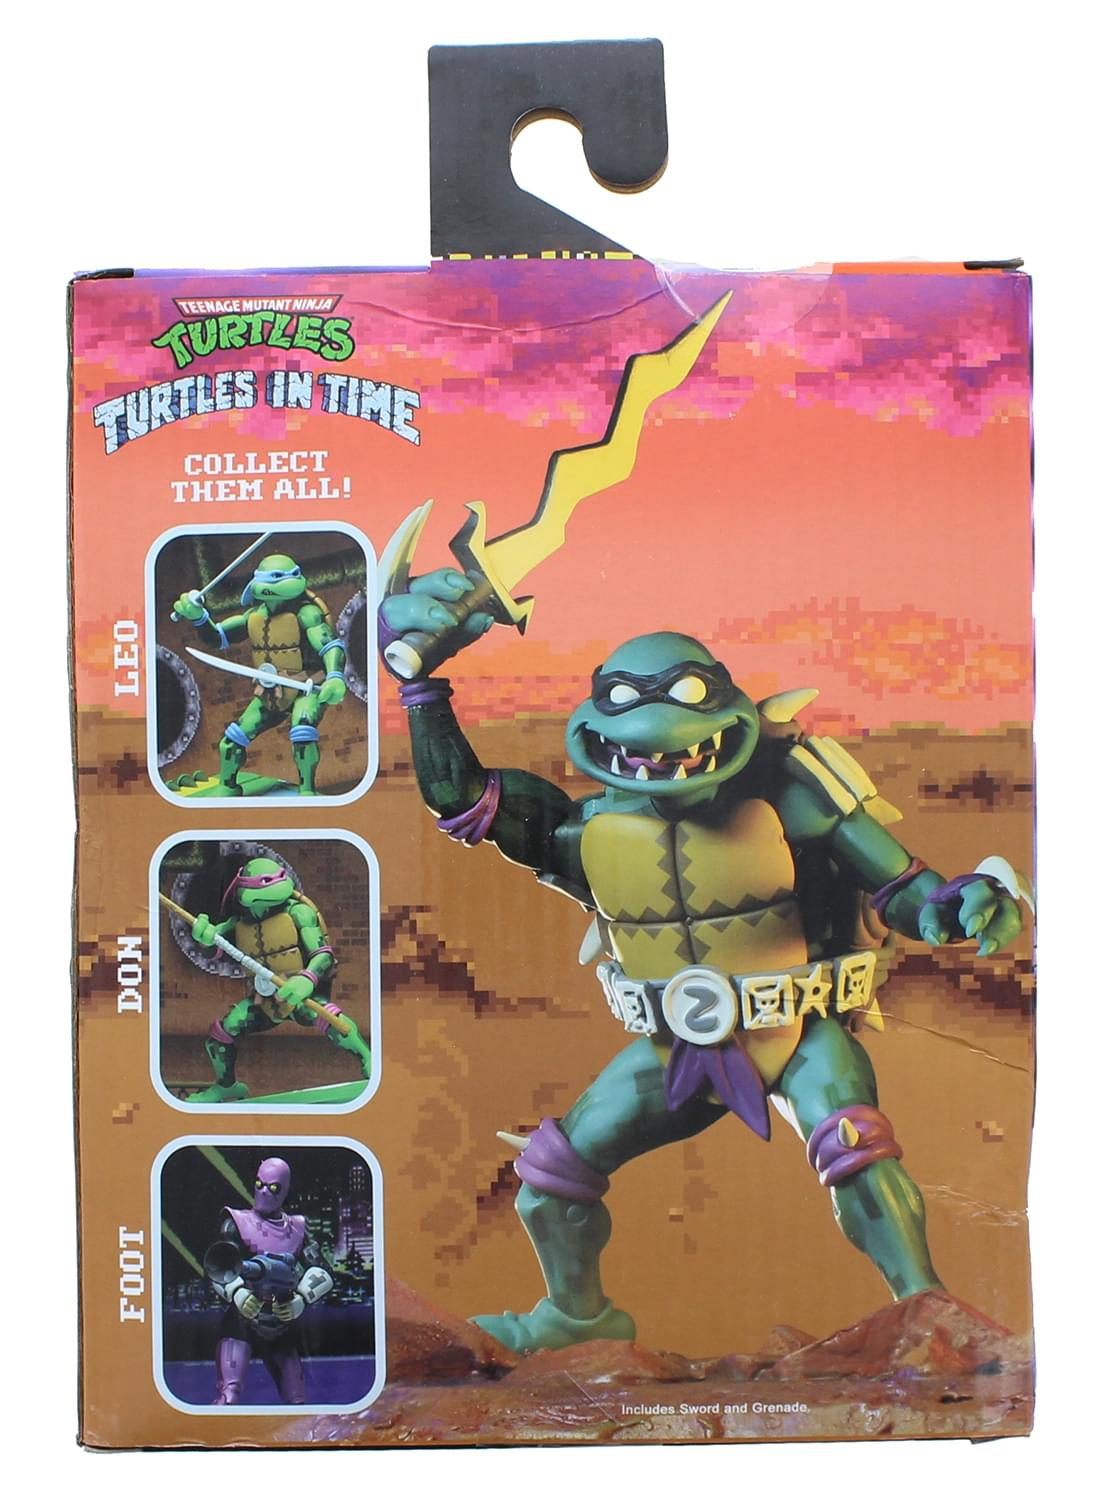 Teenage Mutant Ninja Turtles Turtles In Time 7 Inch Action Figure | Slash